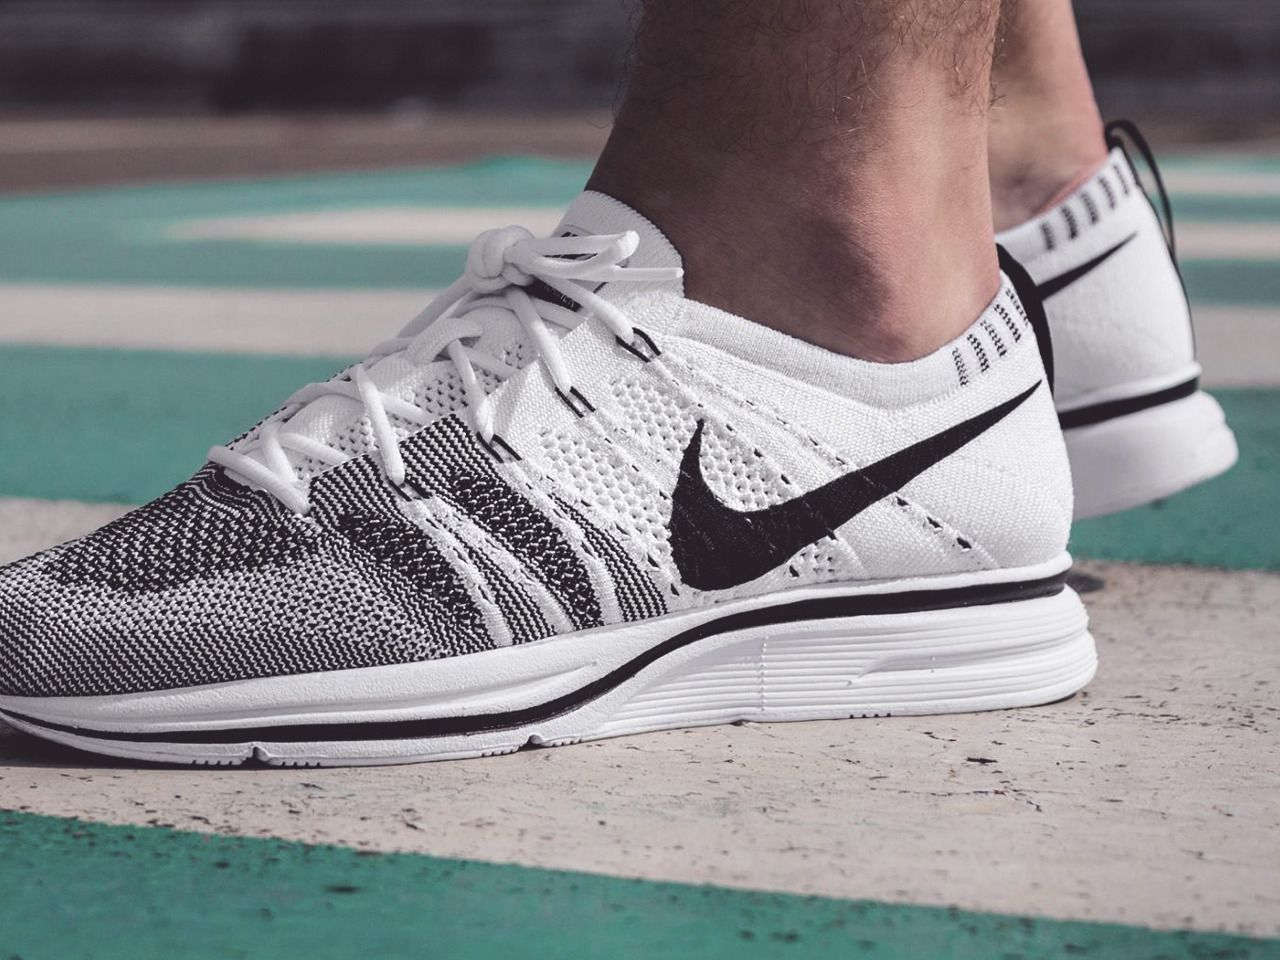 ef96c879724c Nike Flyknit Trainer - White Black - 2017 (by aymonnb)